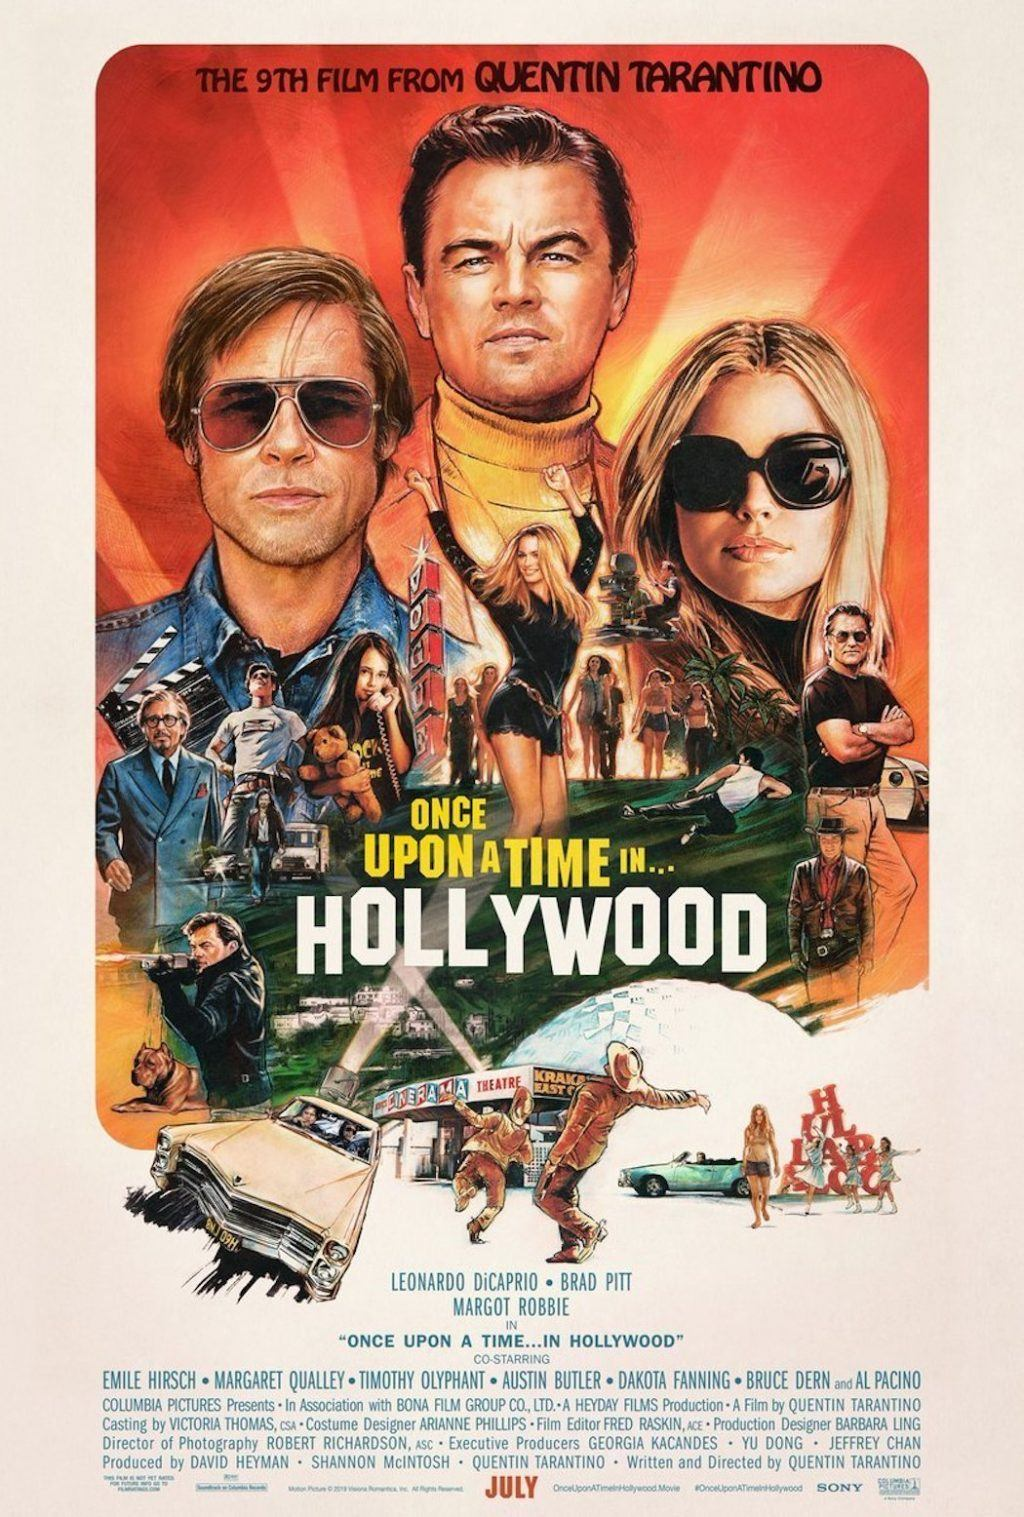 Filmpostern till Quentin Tarantino-filmen Once Upon a Time in Hollywood.